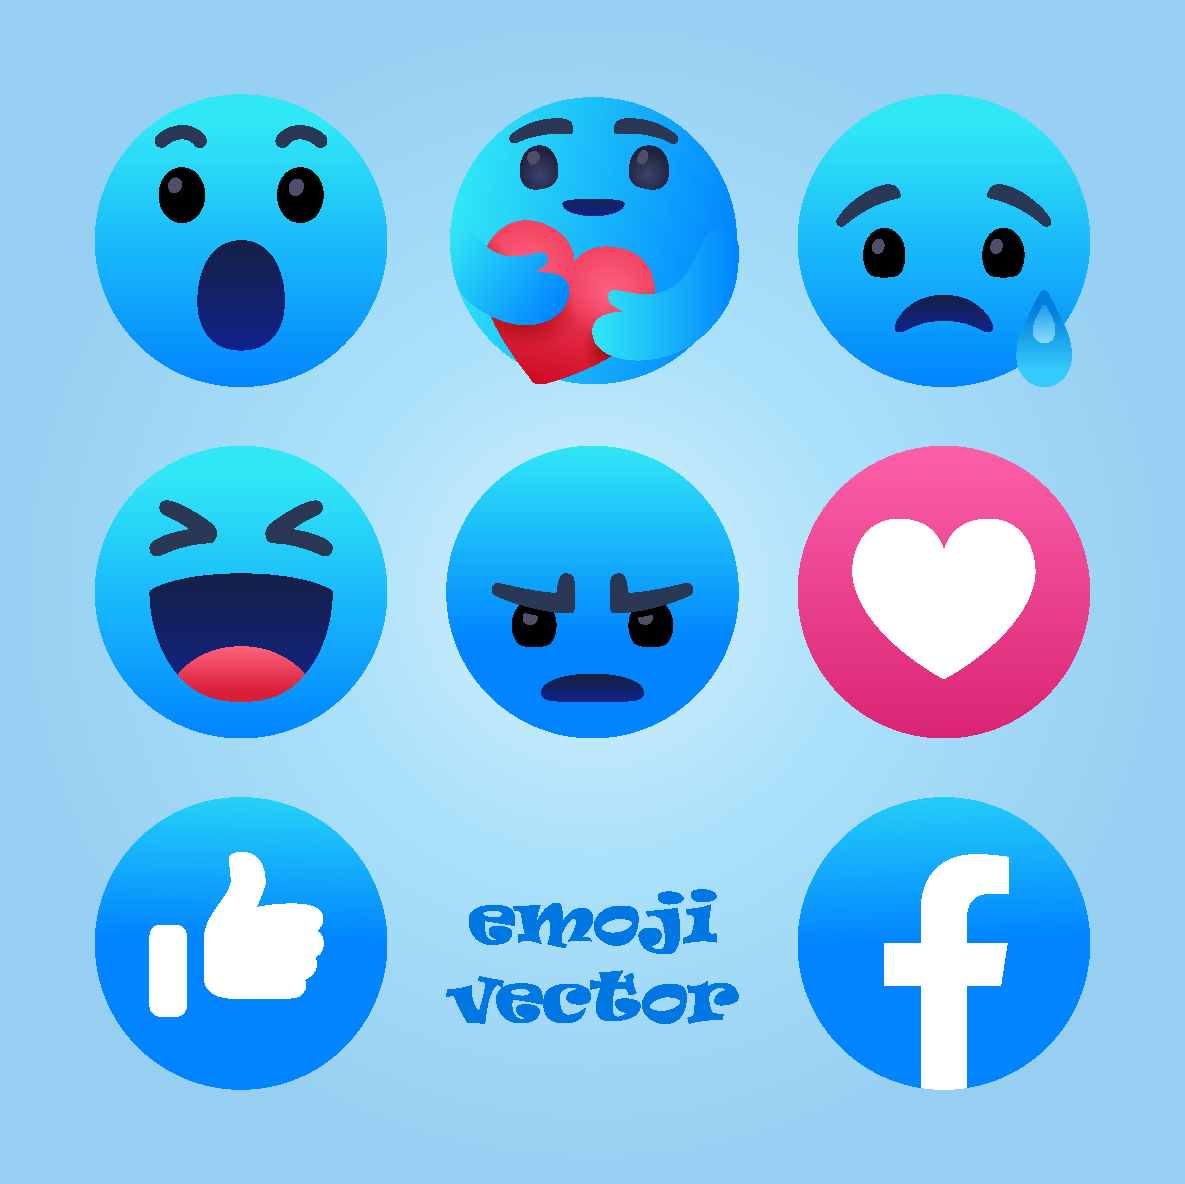 emoji icons vector svg eps ai png psd color free download #facebook #emoji #emojis #emoticons #like #graphics #happy #coreldraw #graphicdesign #love #heart #vectorartist #svg #vectorart #graphic #illustrator #icon #icons #vector #design #eps #designer #logo #logos #photoshop #button #buttons #freepik #illustration #socialmedia